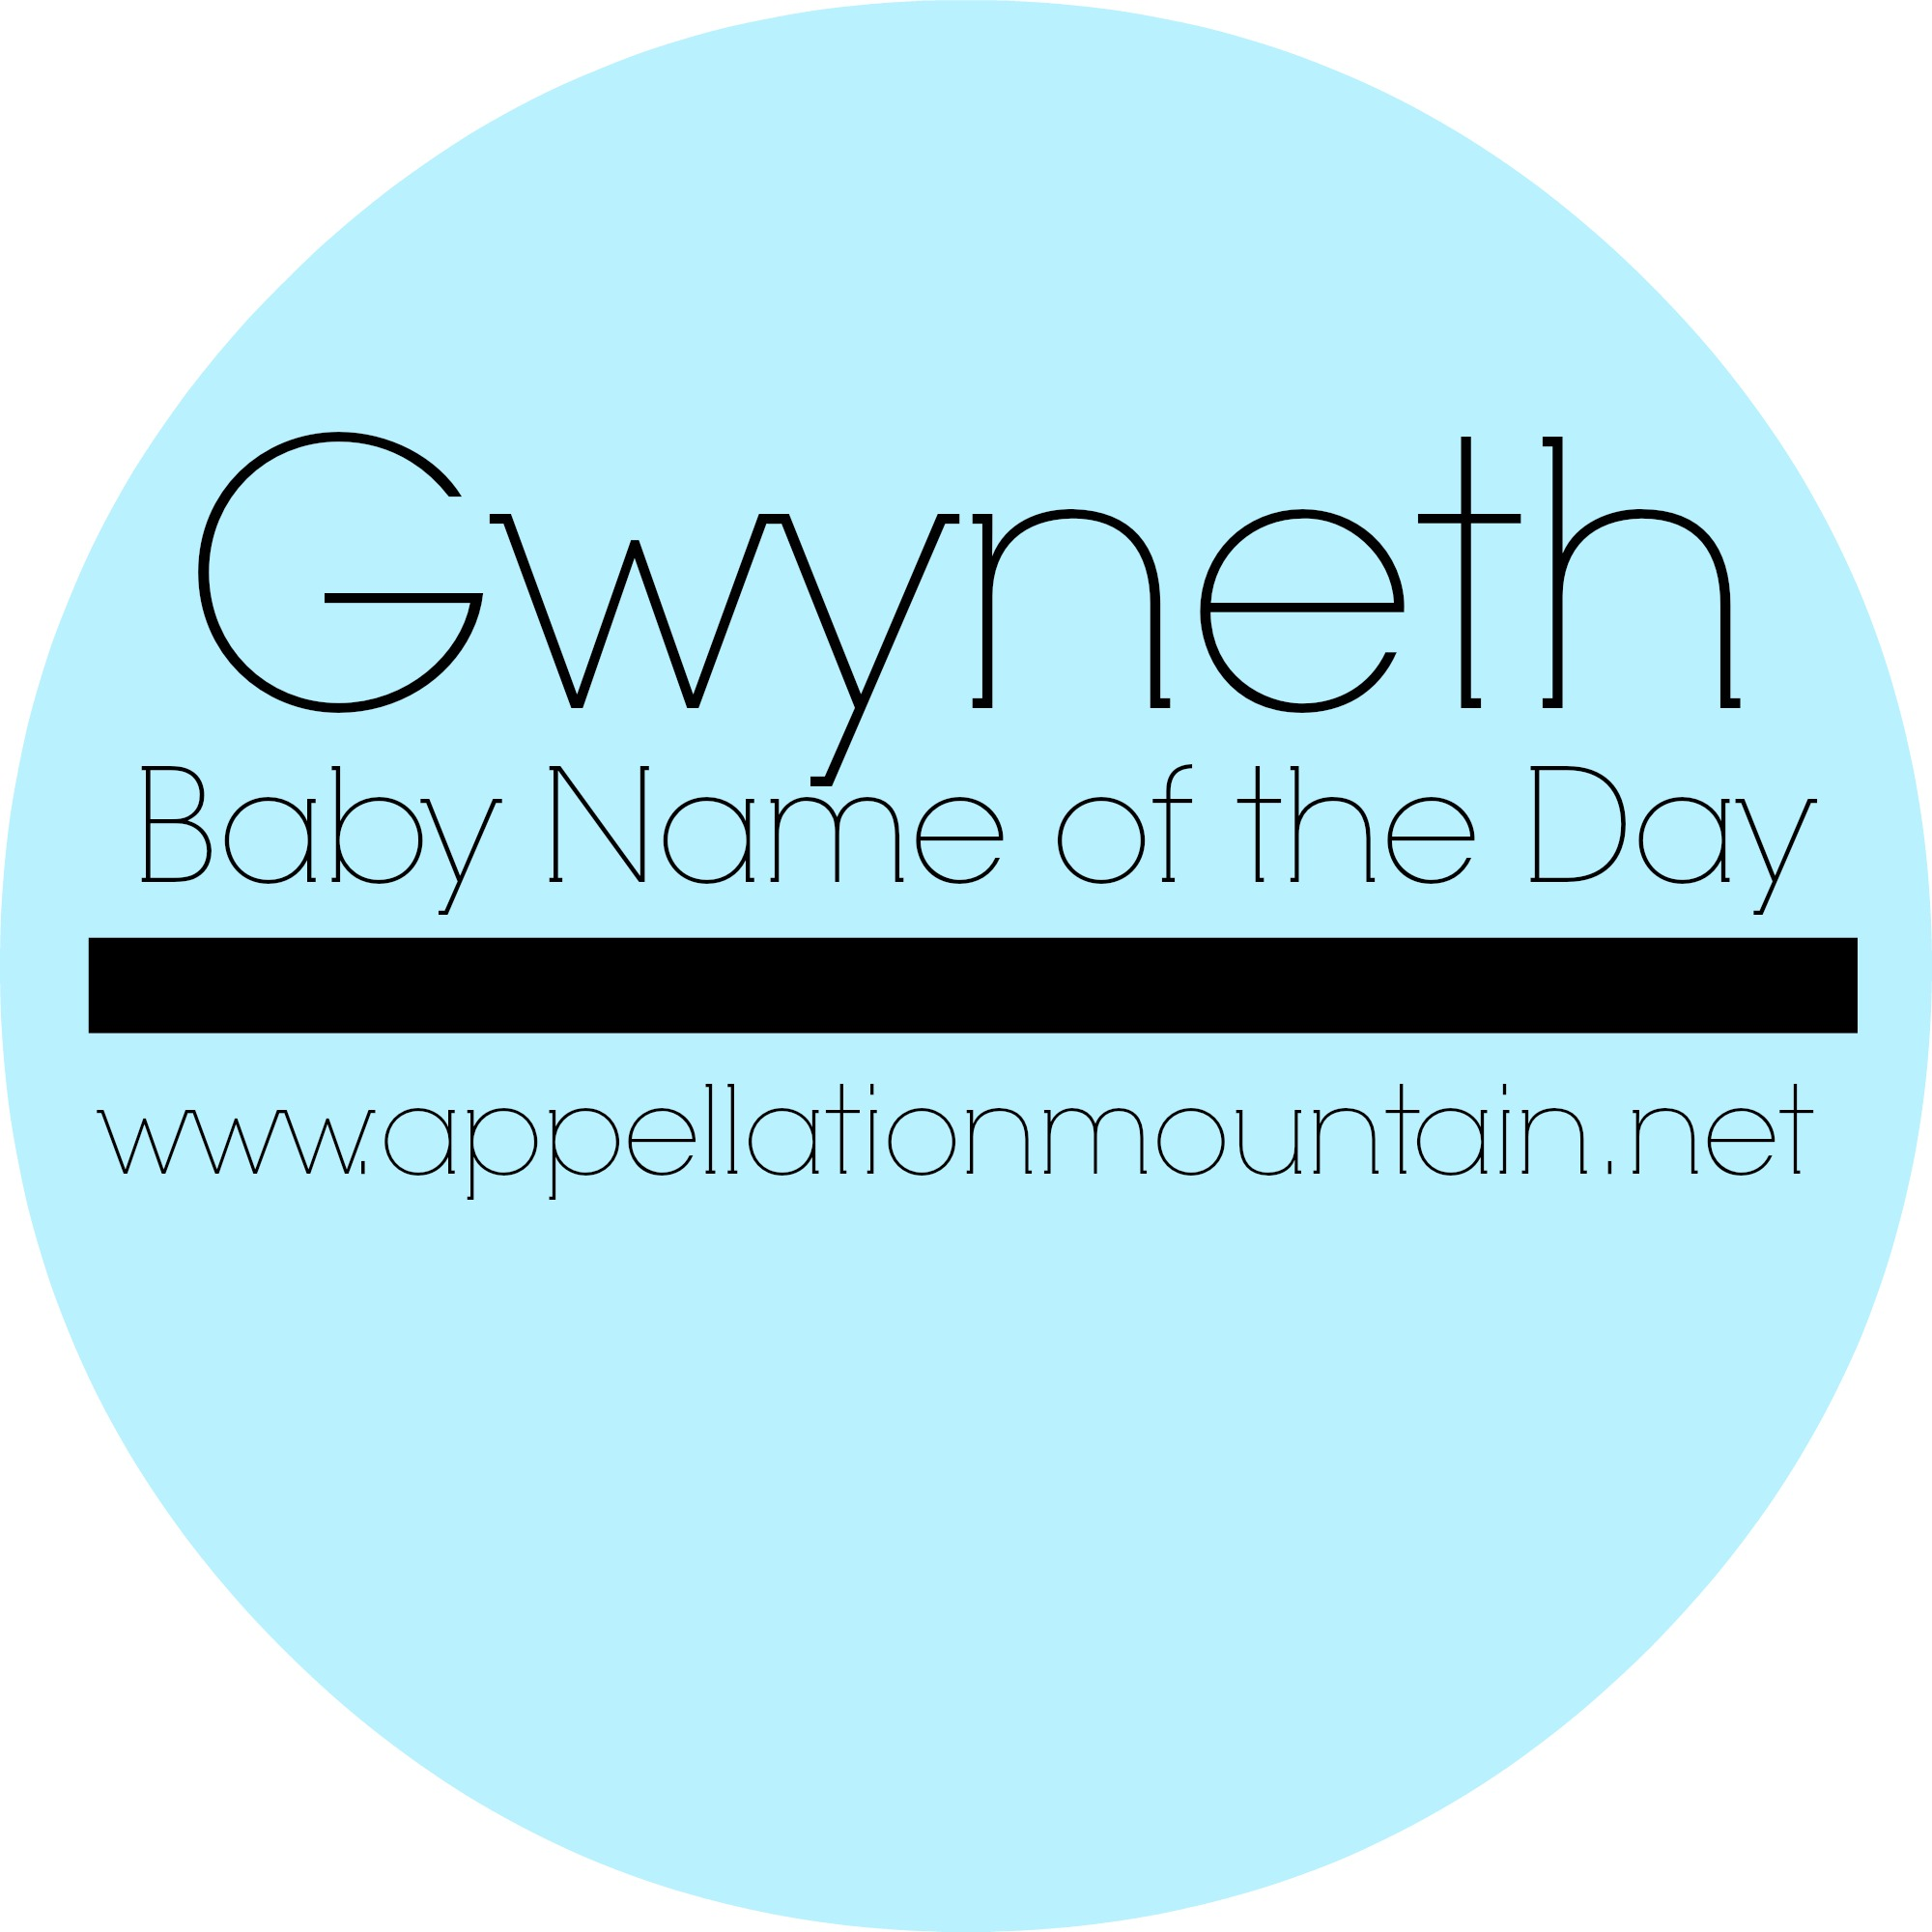 Meaning of name blanche - Gwyneth Baby Name Of The Day